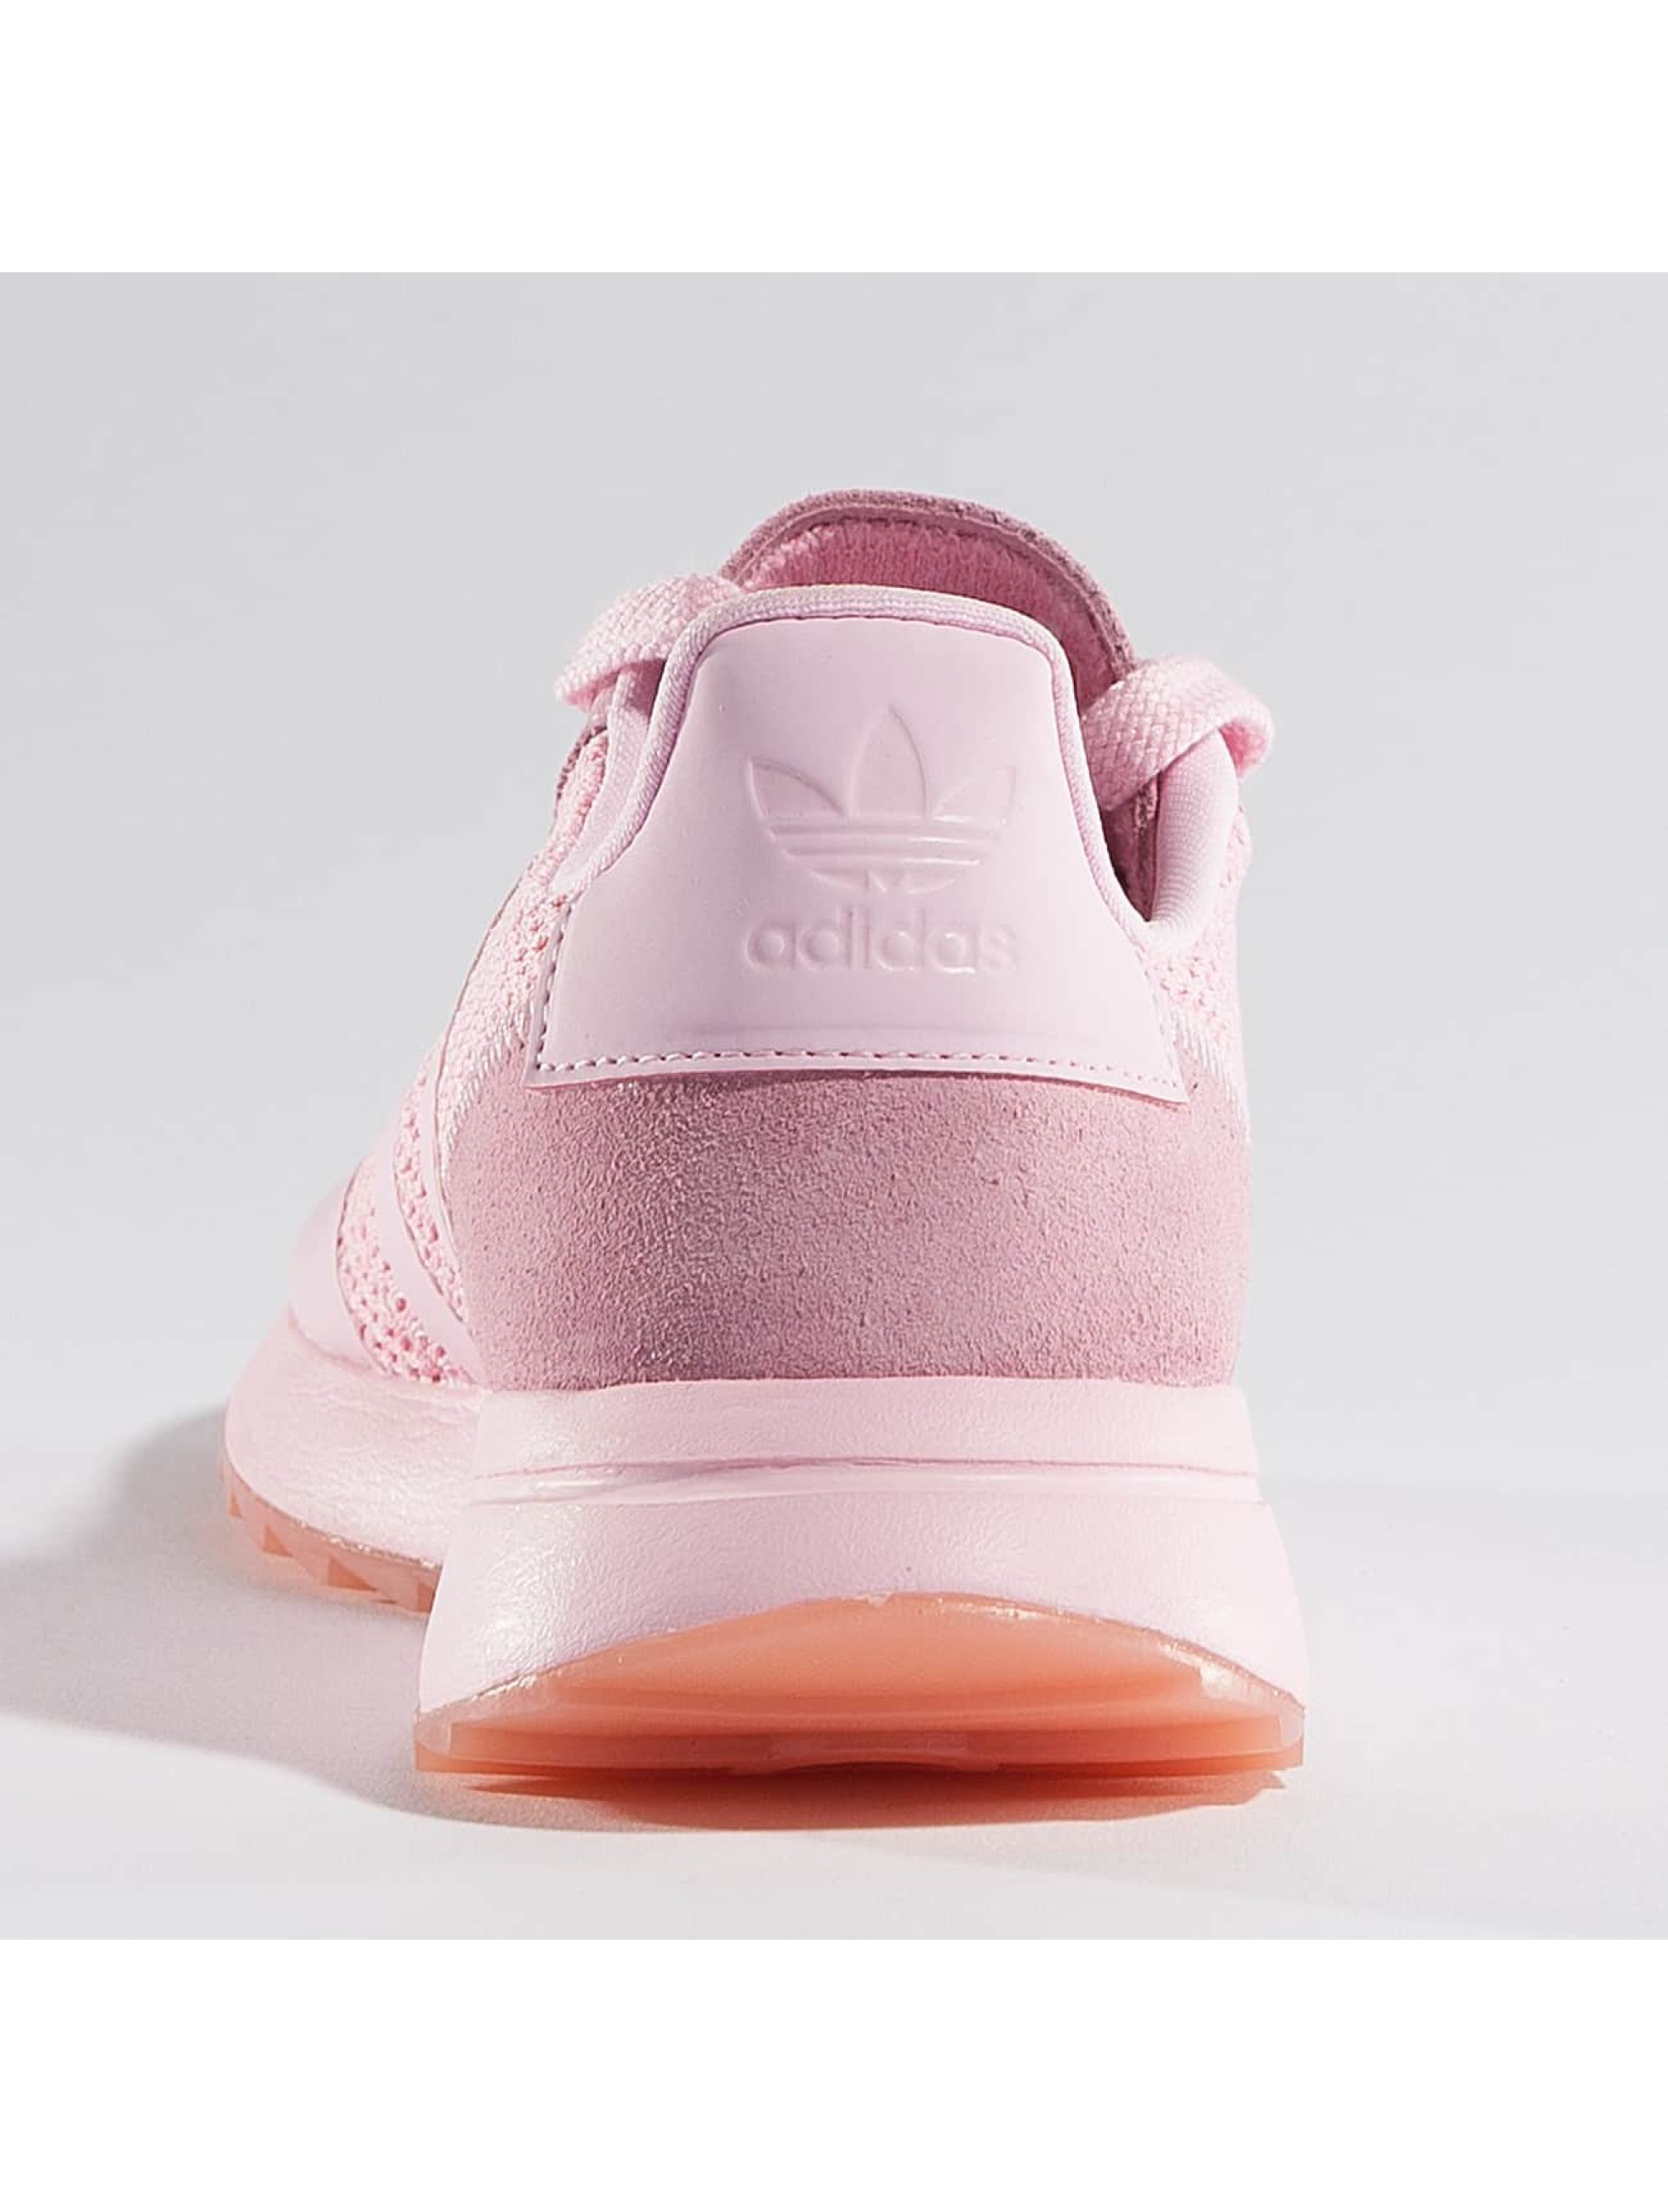 adidas Sneakers FLB W pink